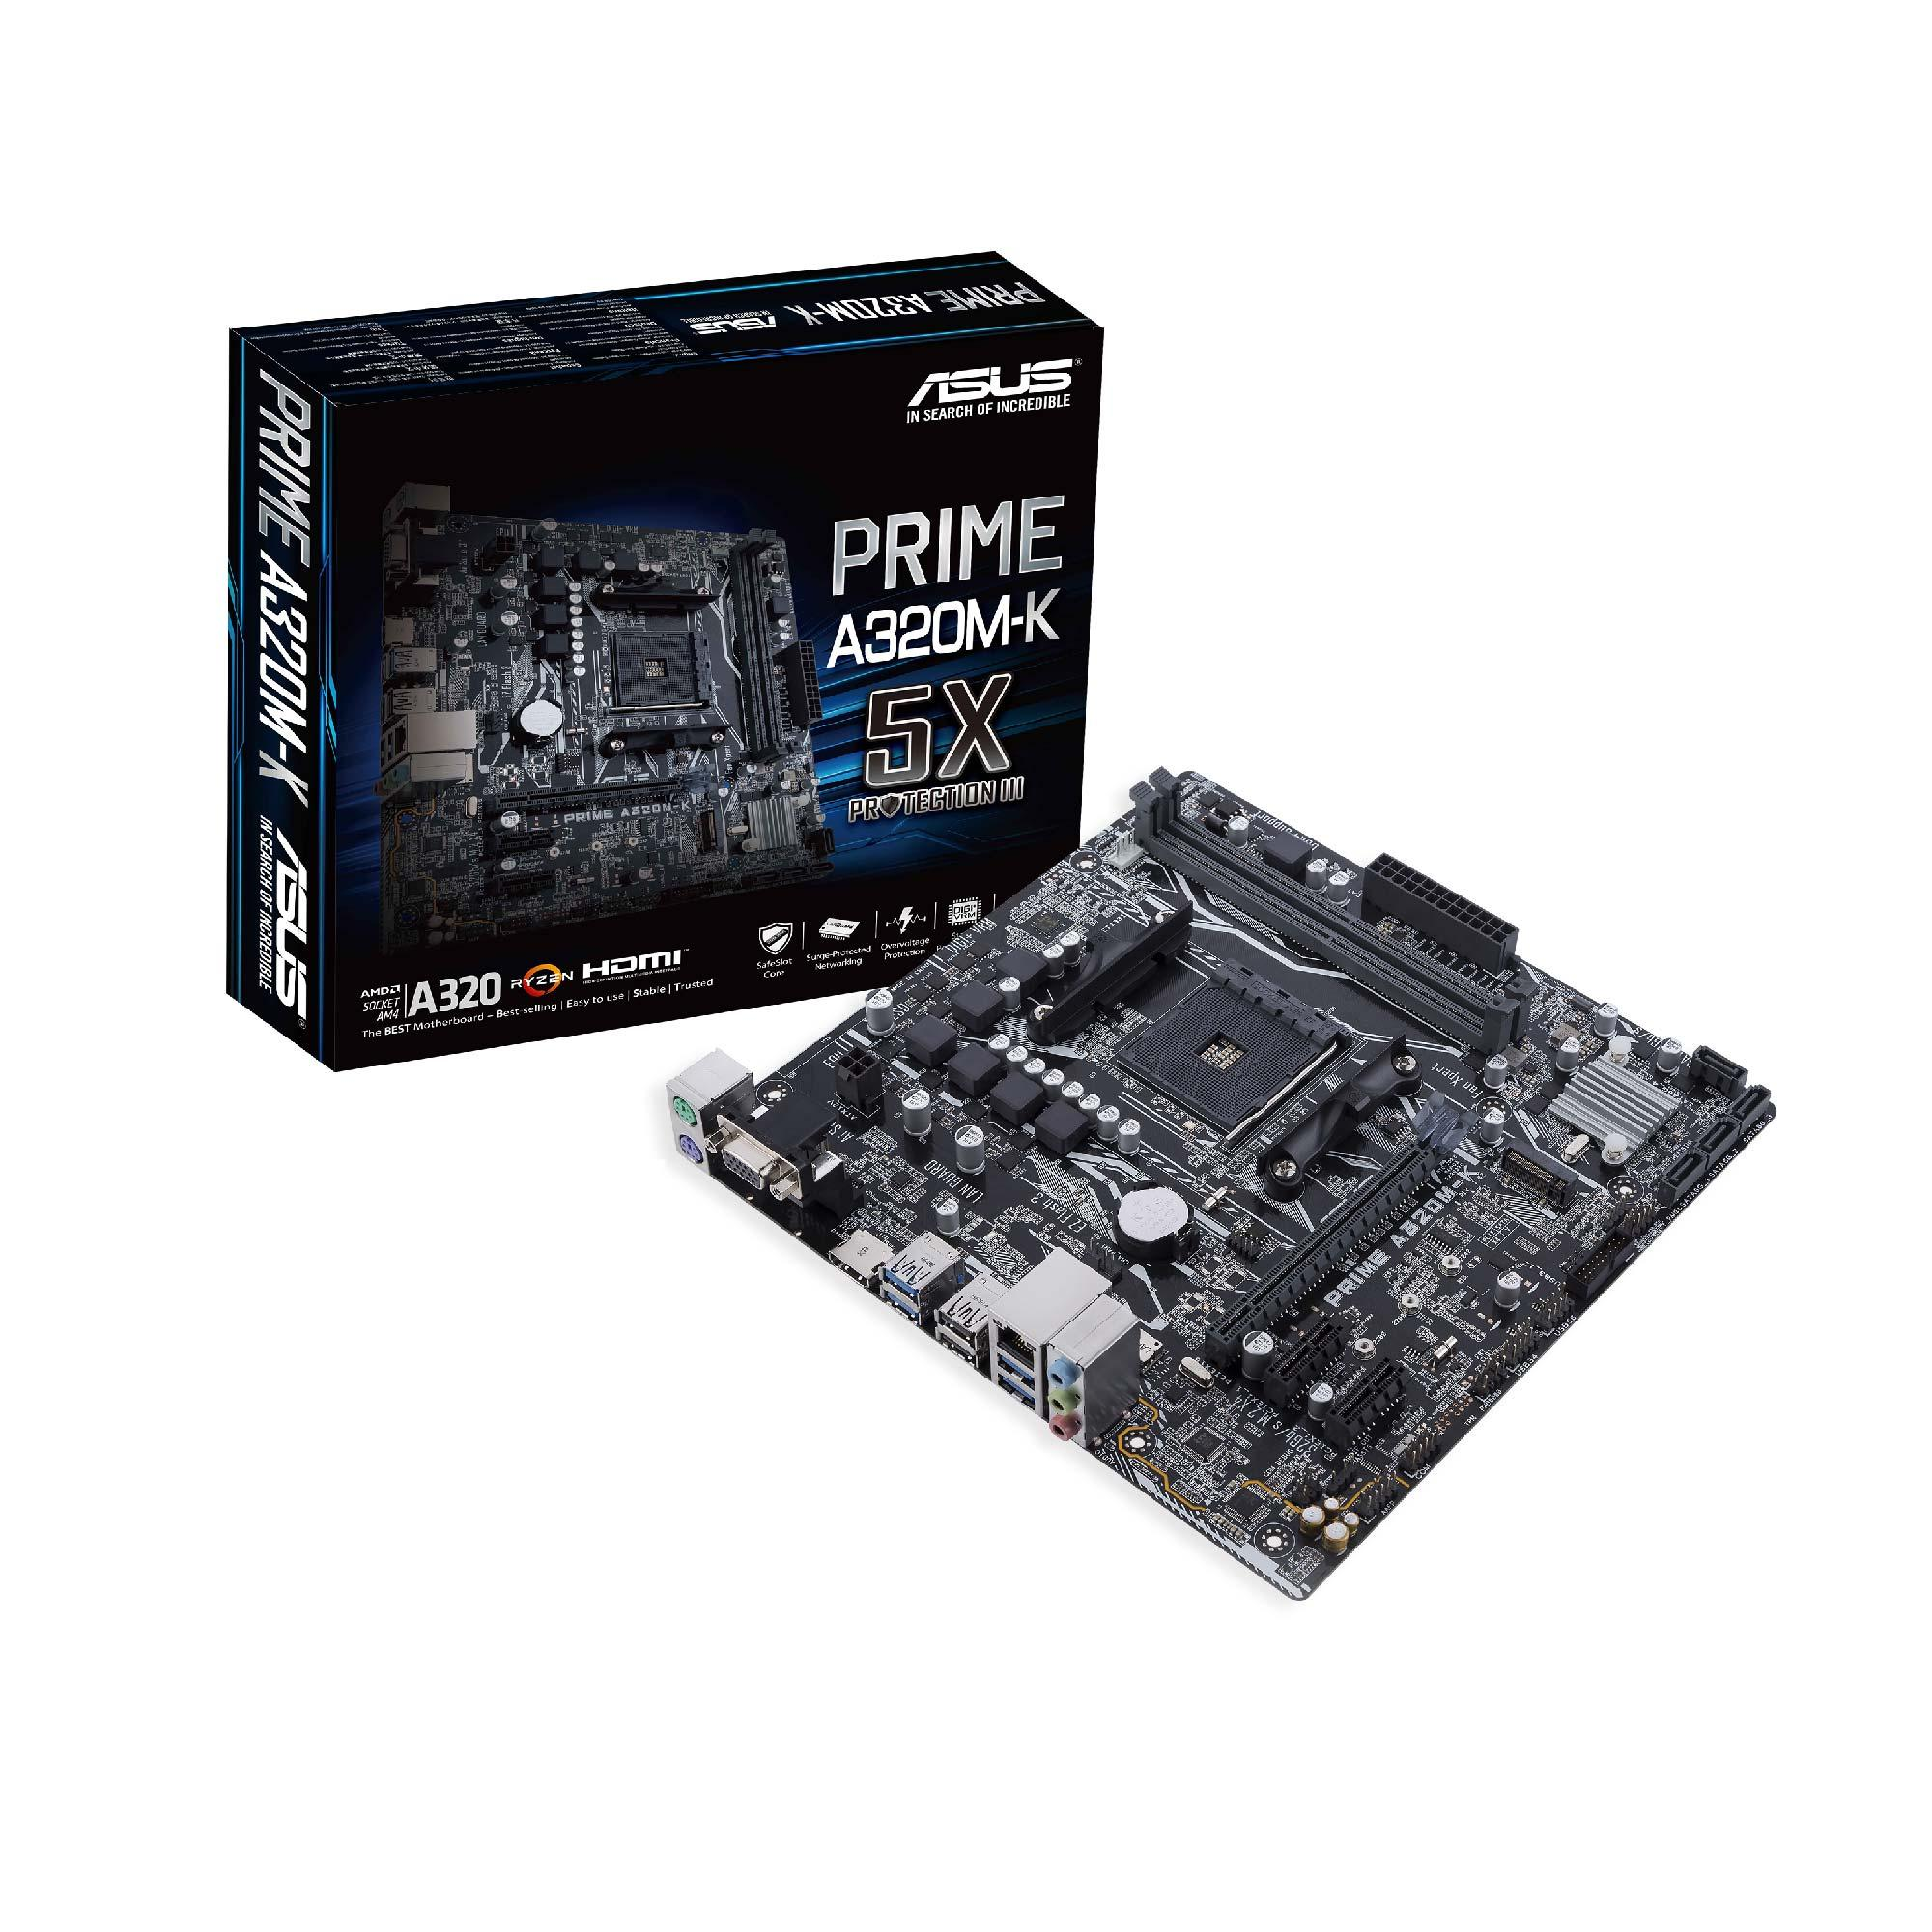 Asus Motherboards Philippines - Asus Computer Motherboards for sale